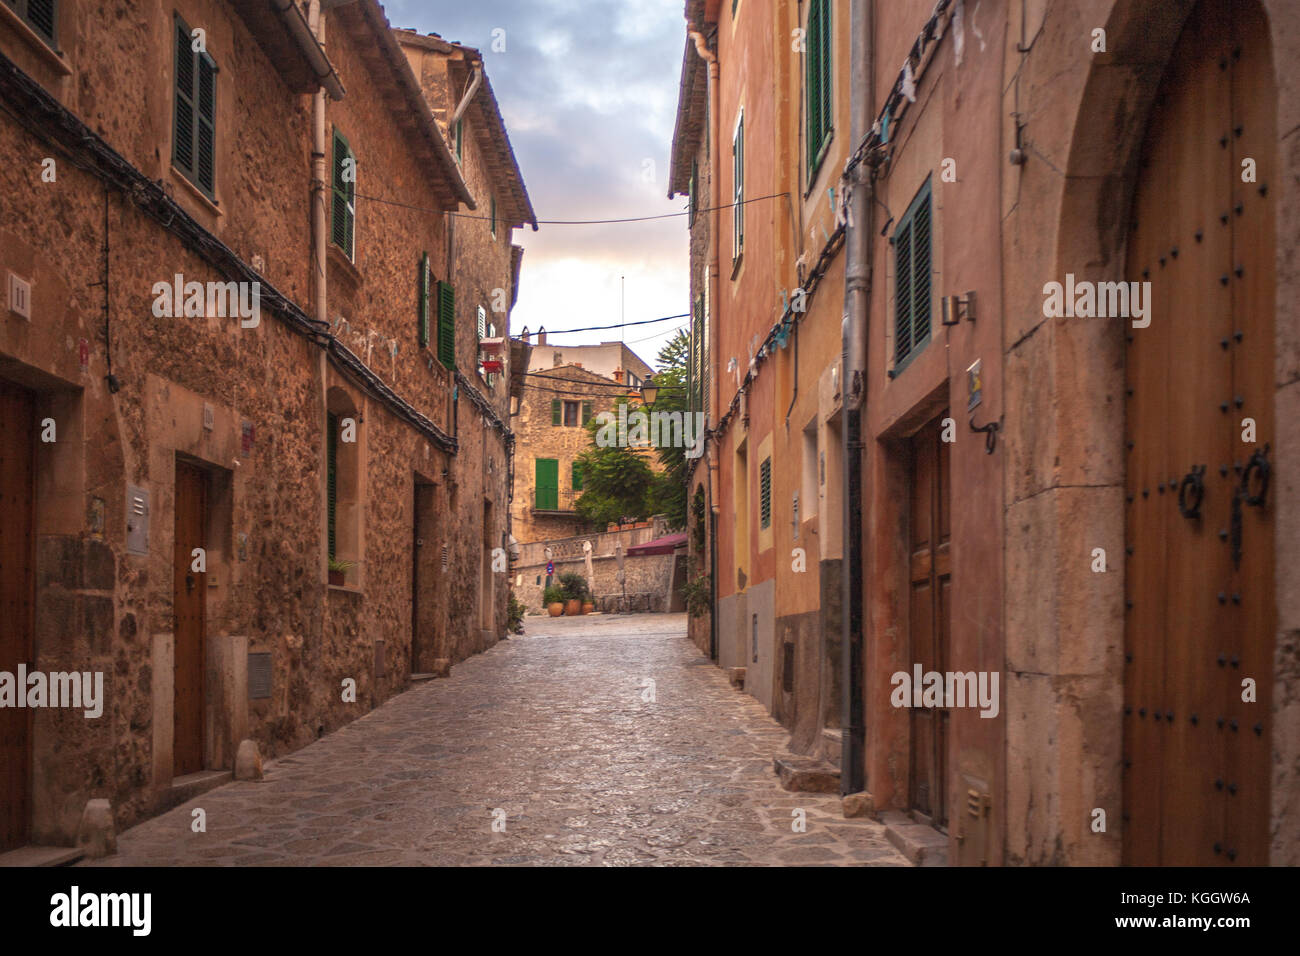 Charming Spanish homes line the street in Valldemossa, Mallorca - Stock Image